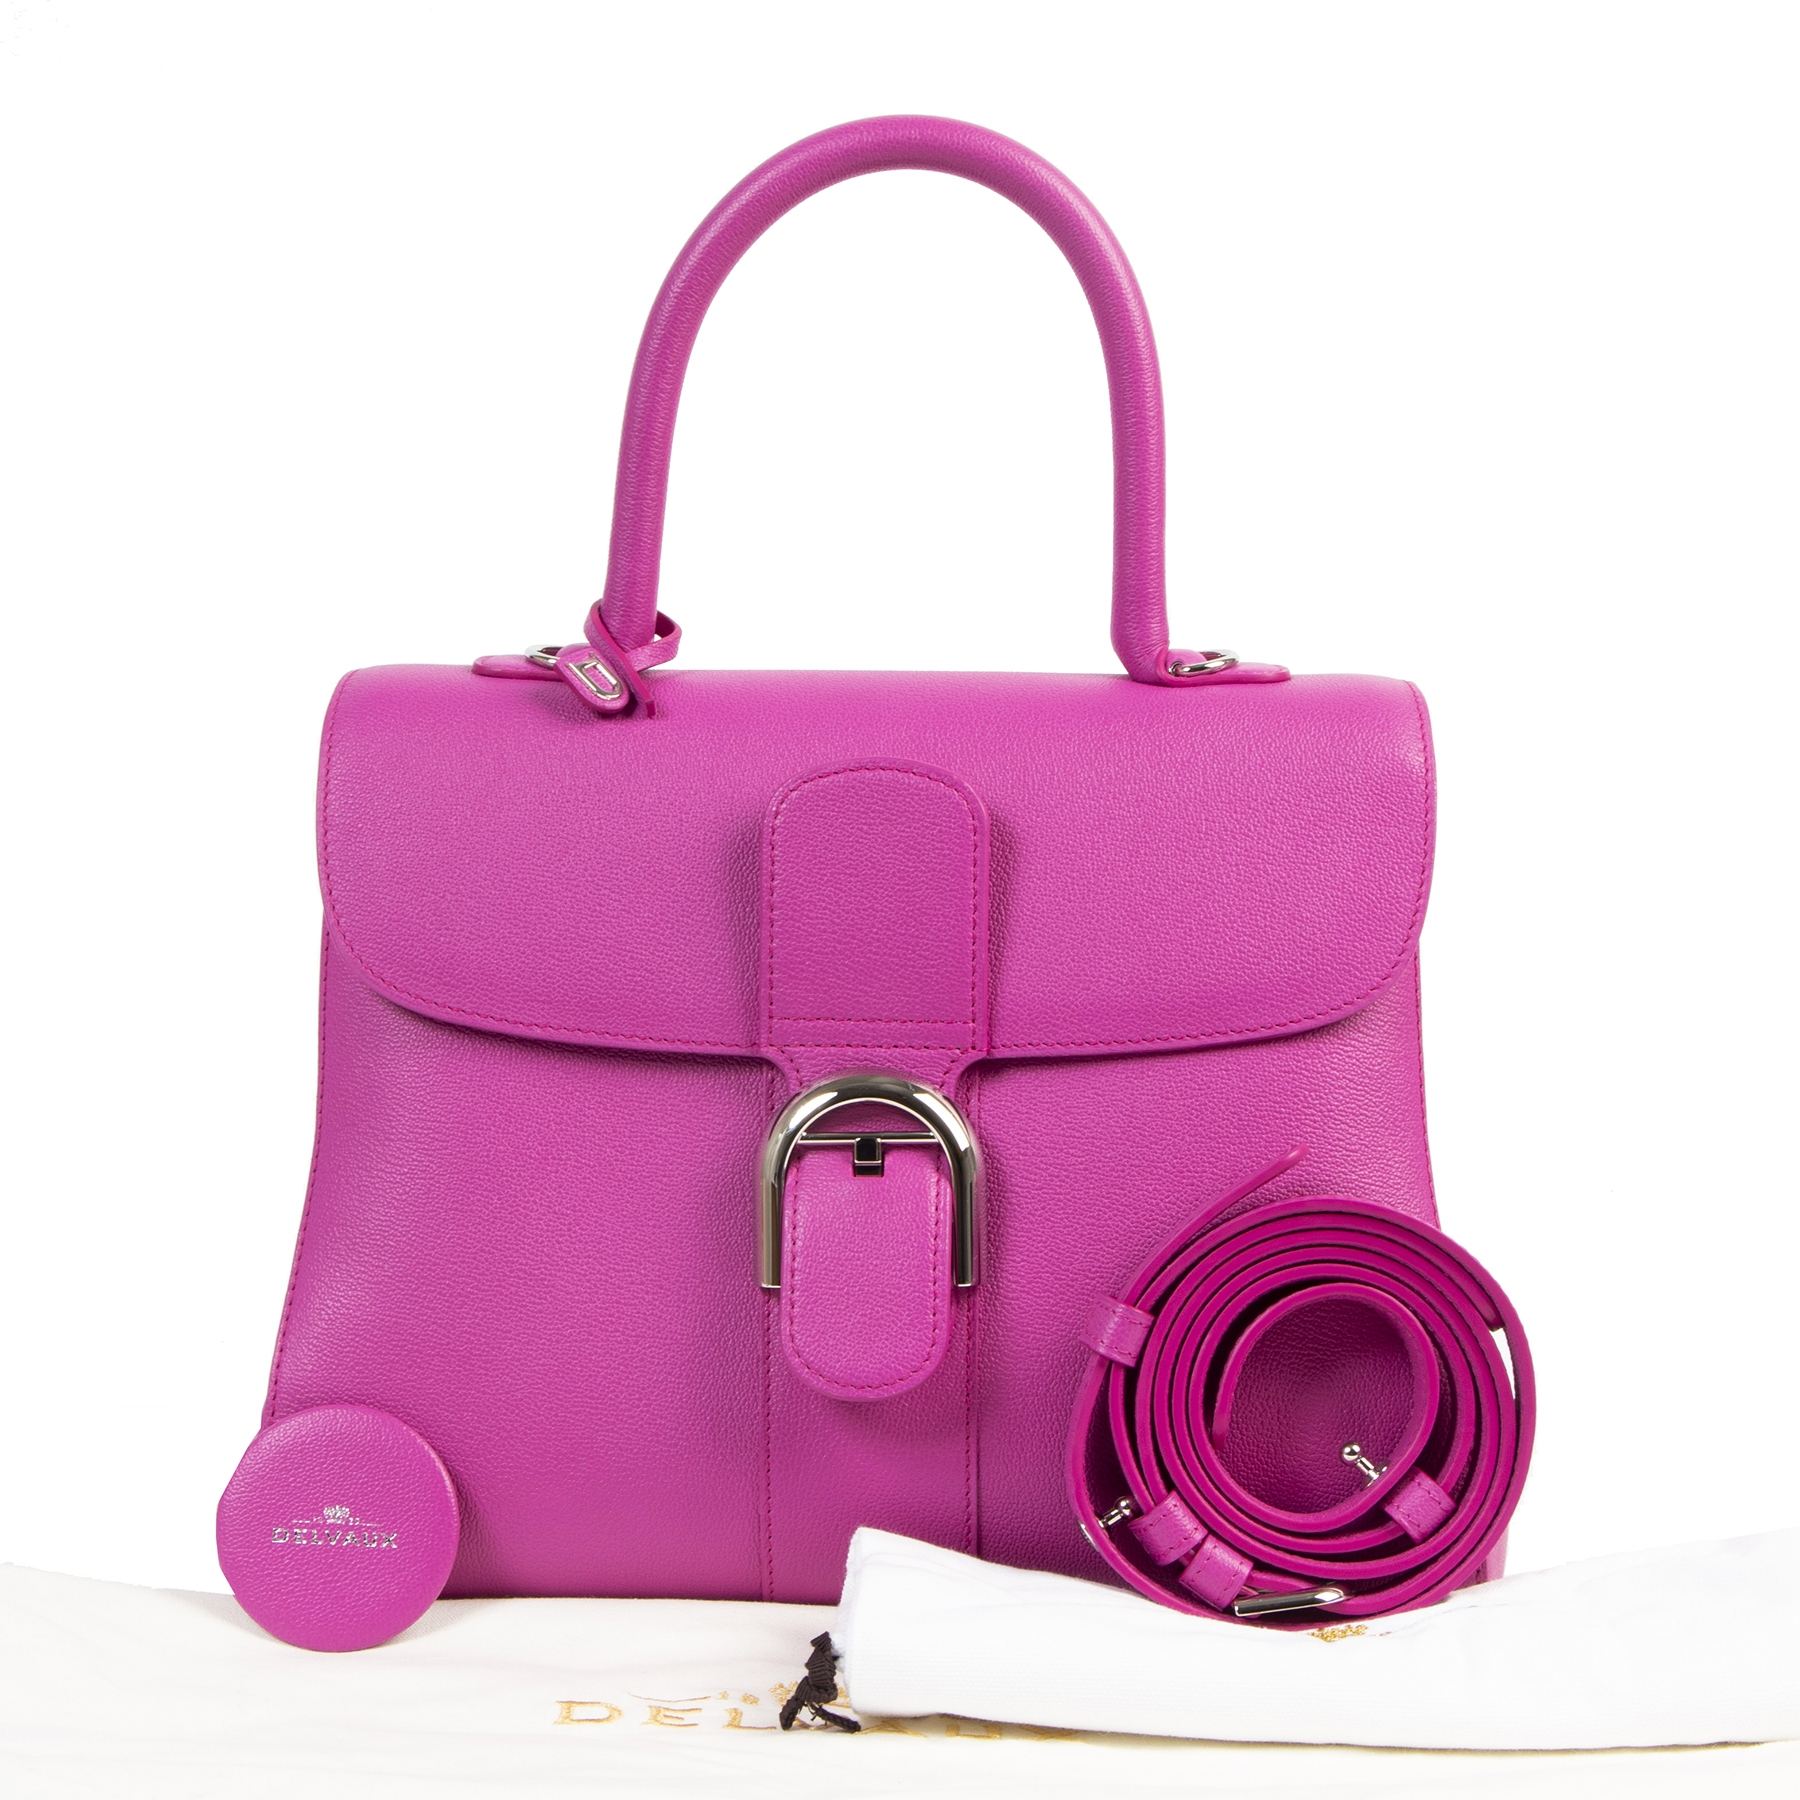 Delvaux Brillant MM Fuchsia Bag